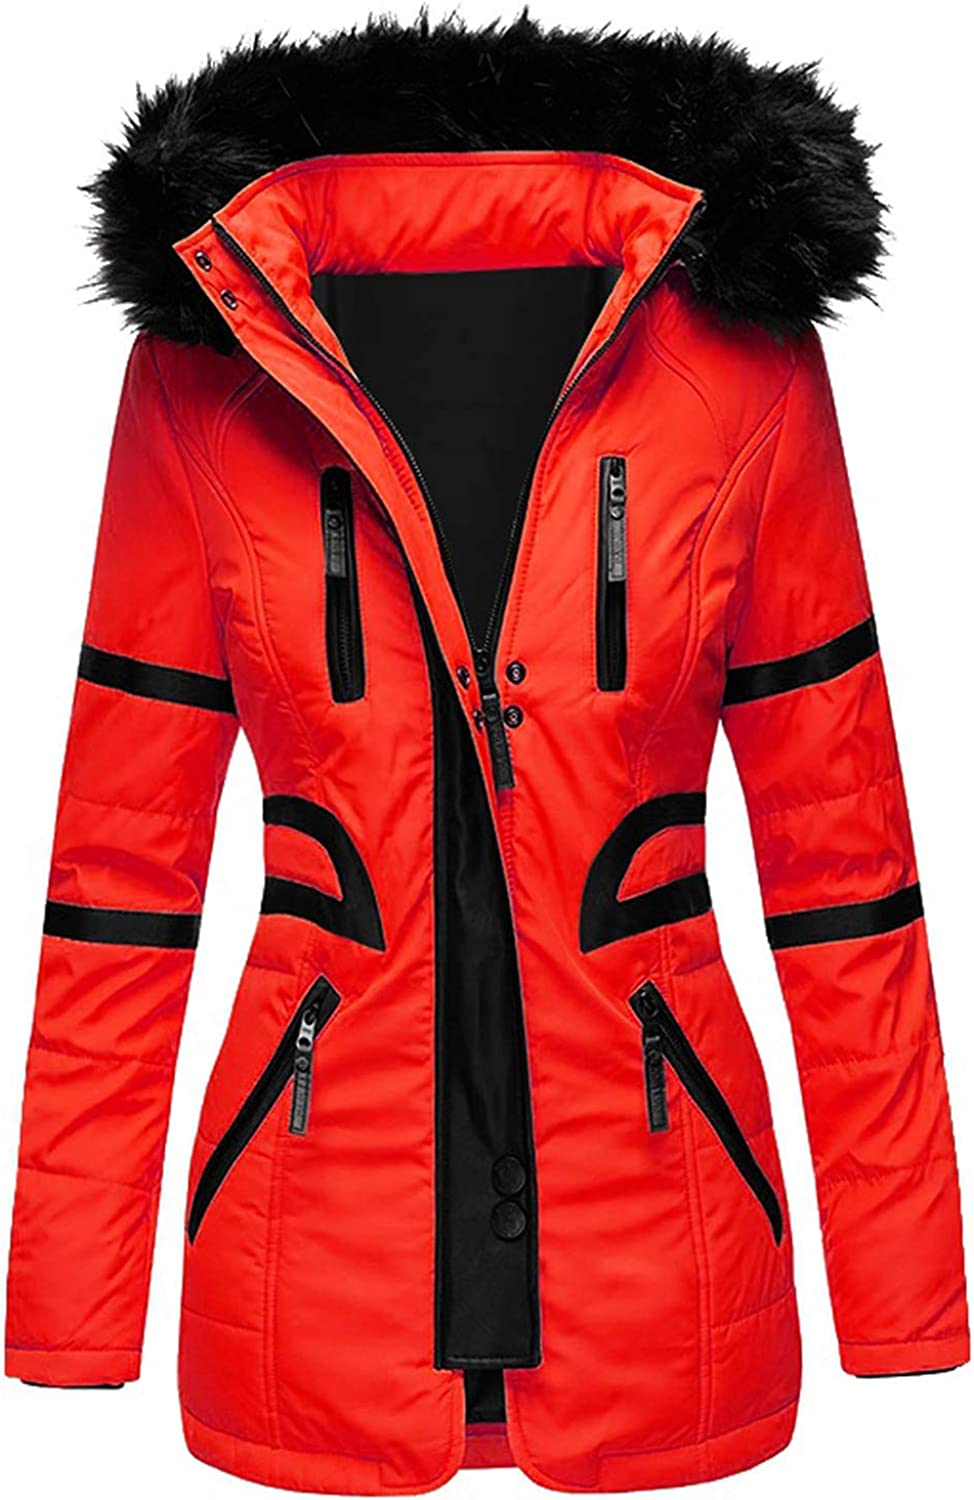 HGWXX7 Womens Overcoat Fashion Oversized Parka Ranking TOP15 Up Industry No. 1 wit Zip Jacket